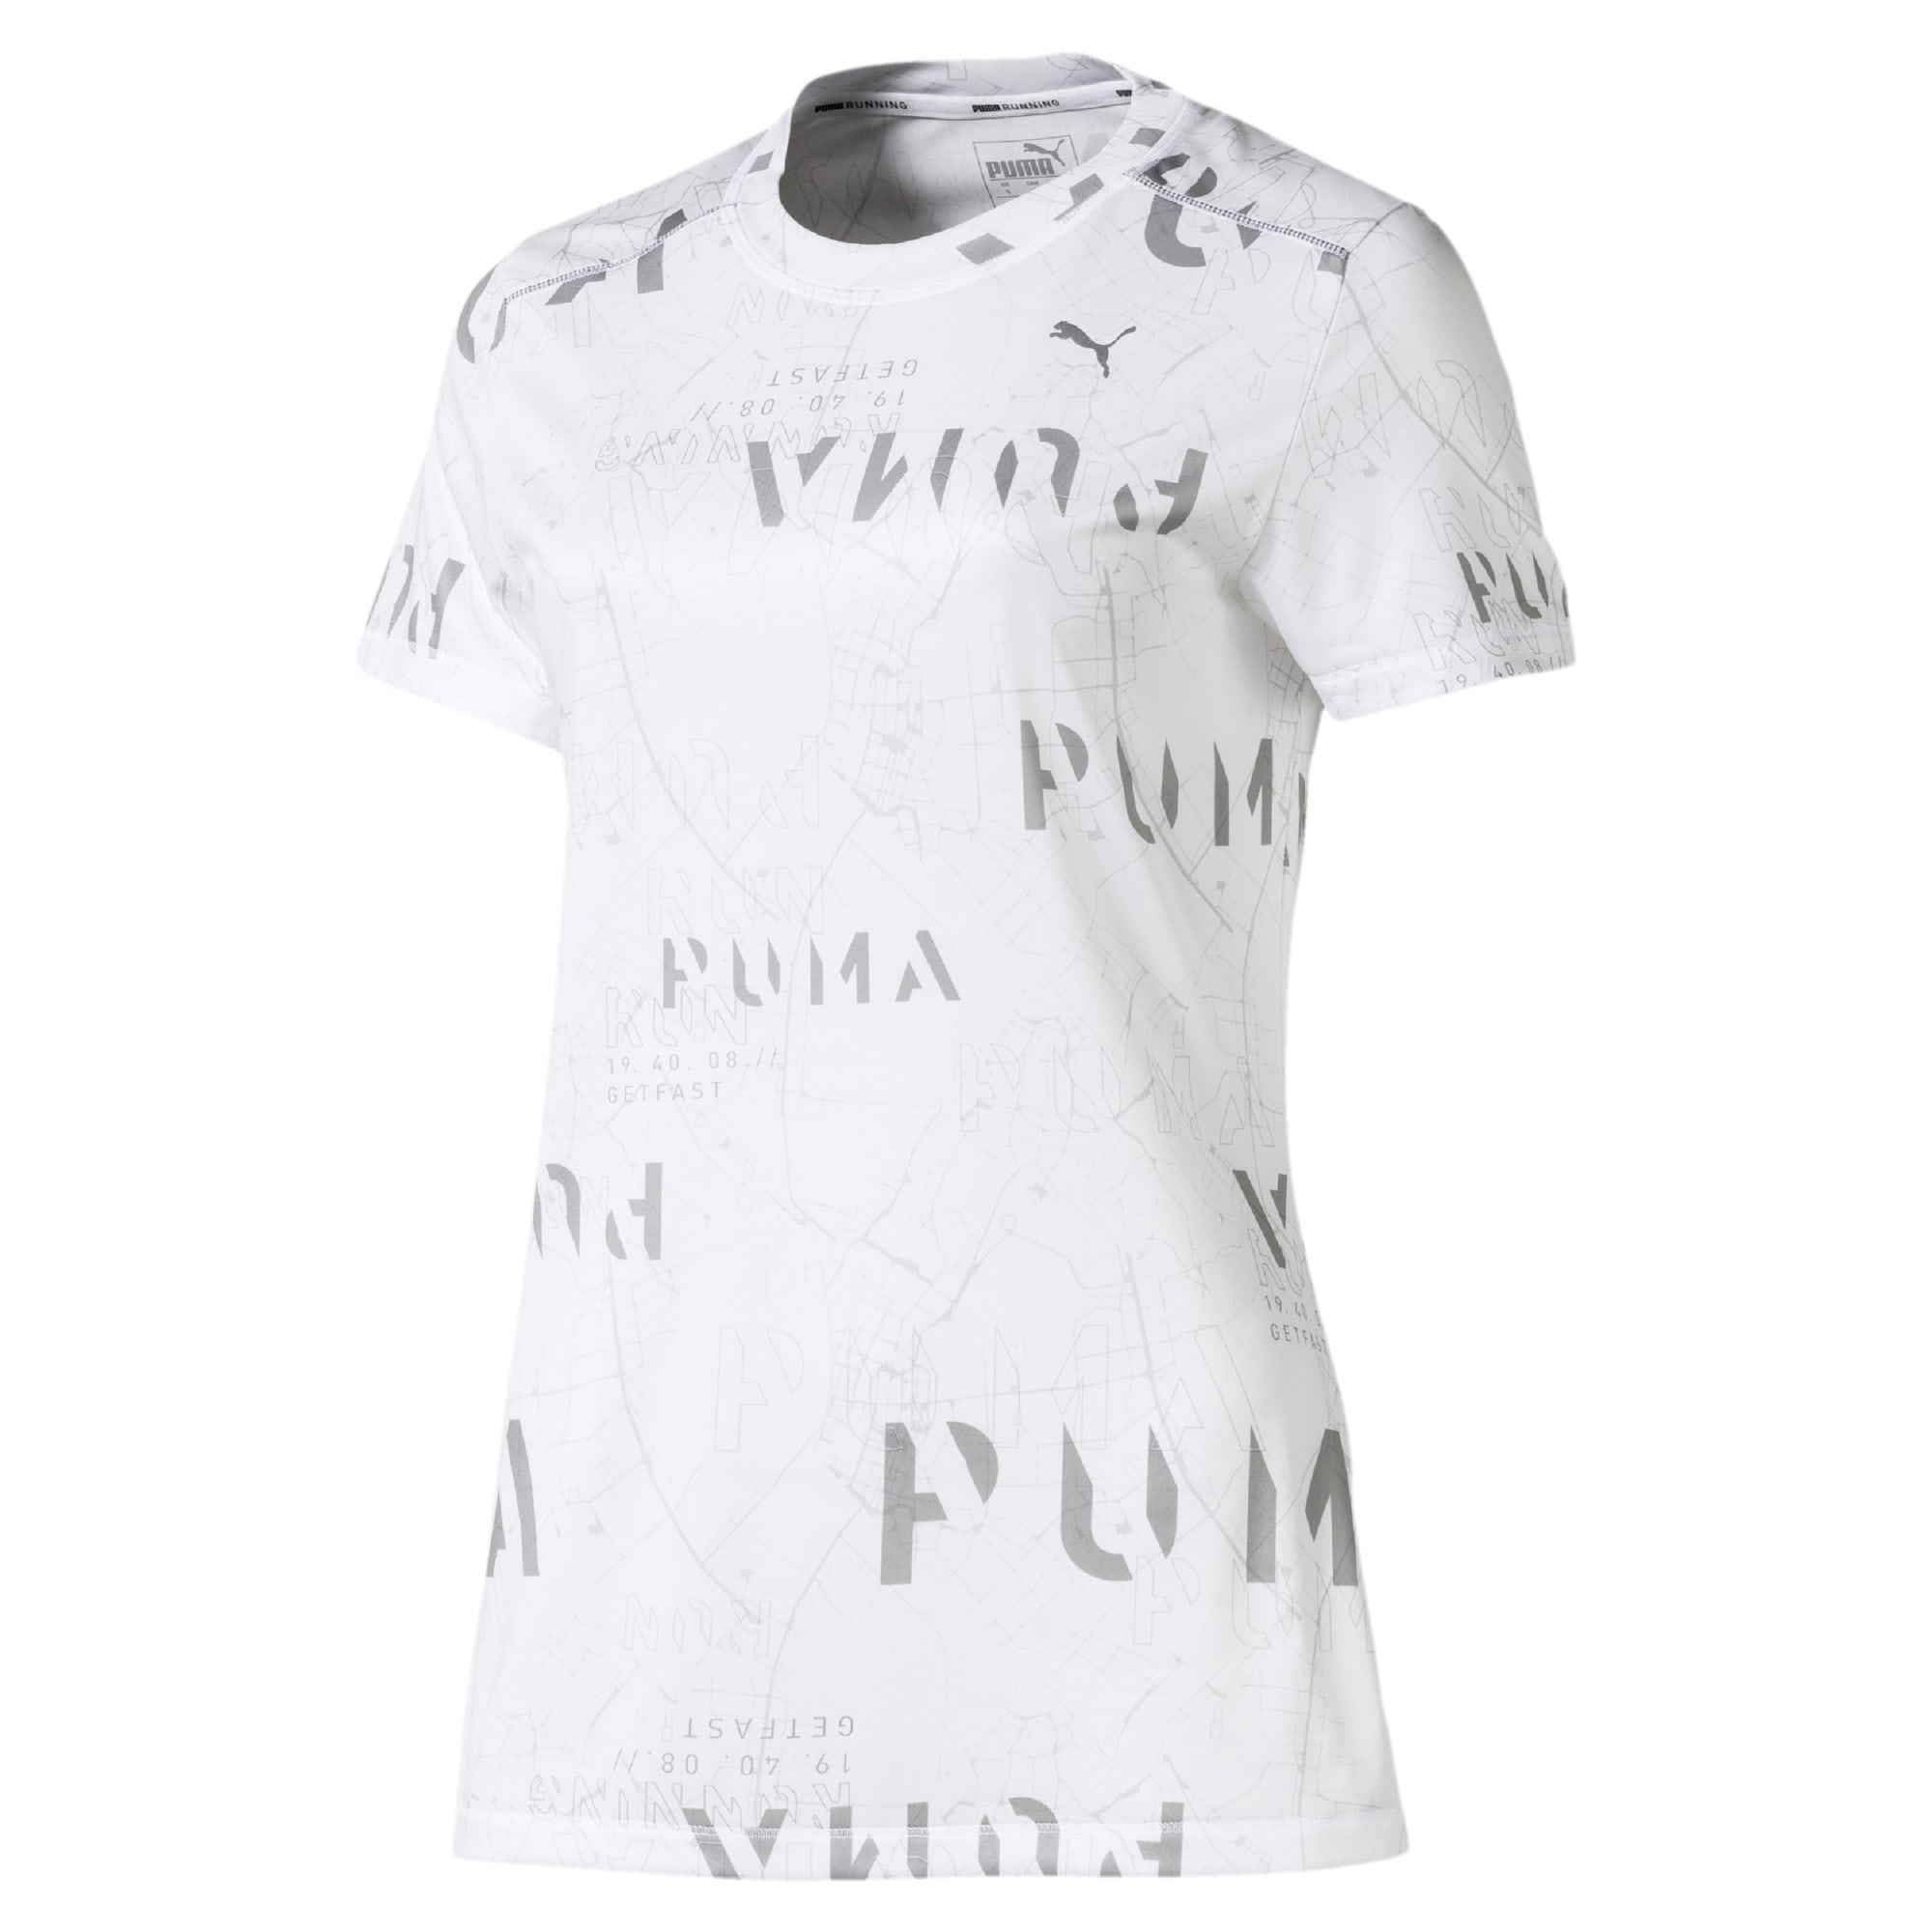 Last Lap Graphic Women's Running Tee, Puma White, large-IND